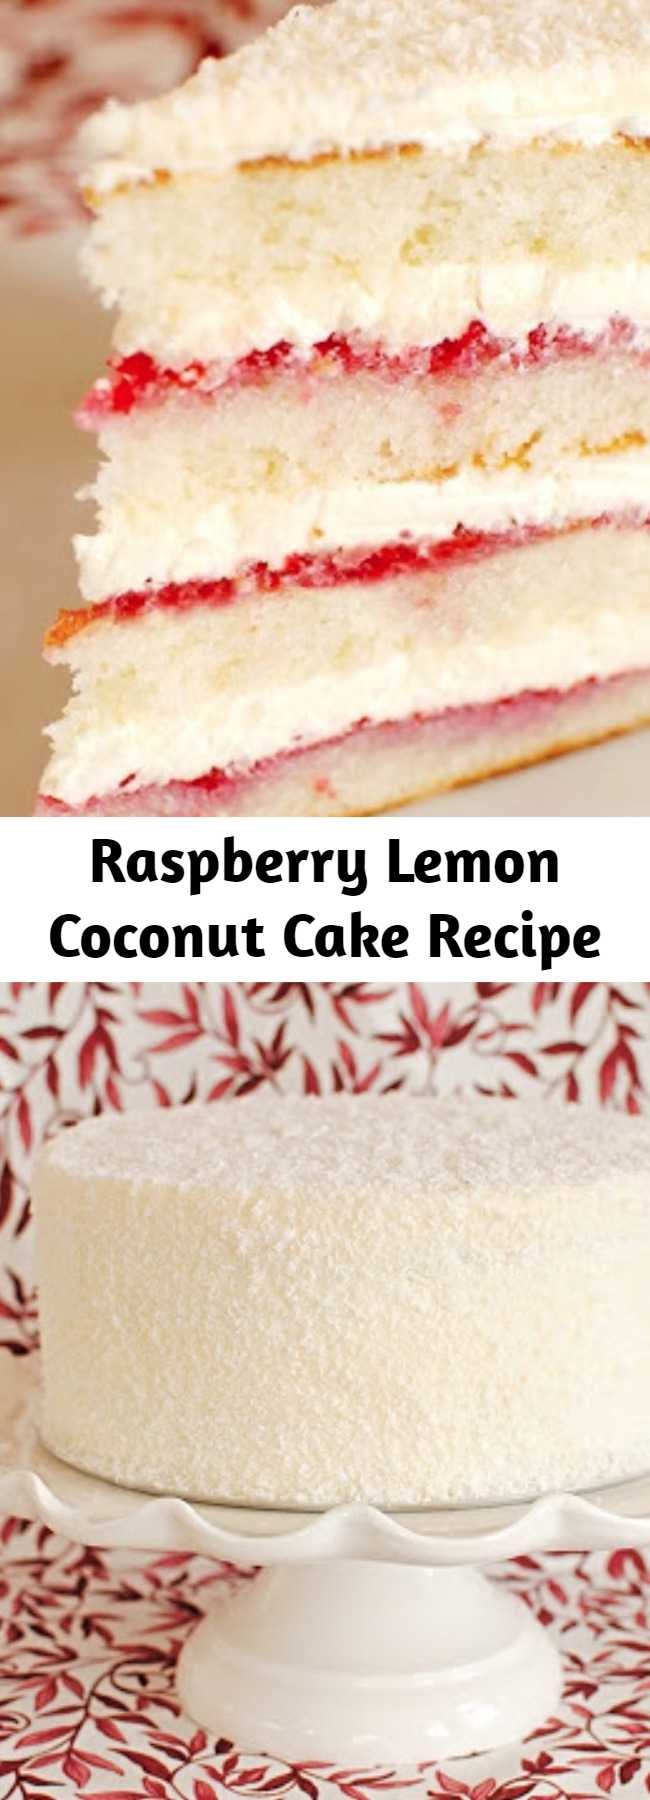 Raspberry Lemon Coconut Cake Recipe - This cake wasn't too fussy--well relatively, we are talking about a layer cake here--and it came together quickly and easily. Layers of raspberry preserves and lemon buttercream decorated simply with a little coconut. No piping tips needed.